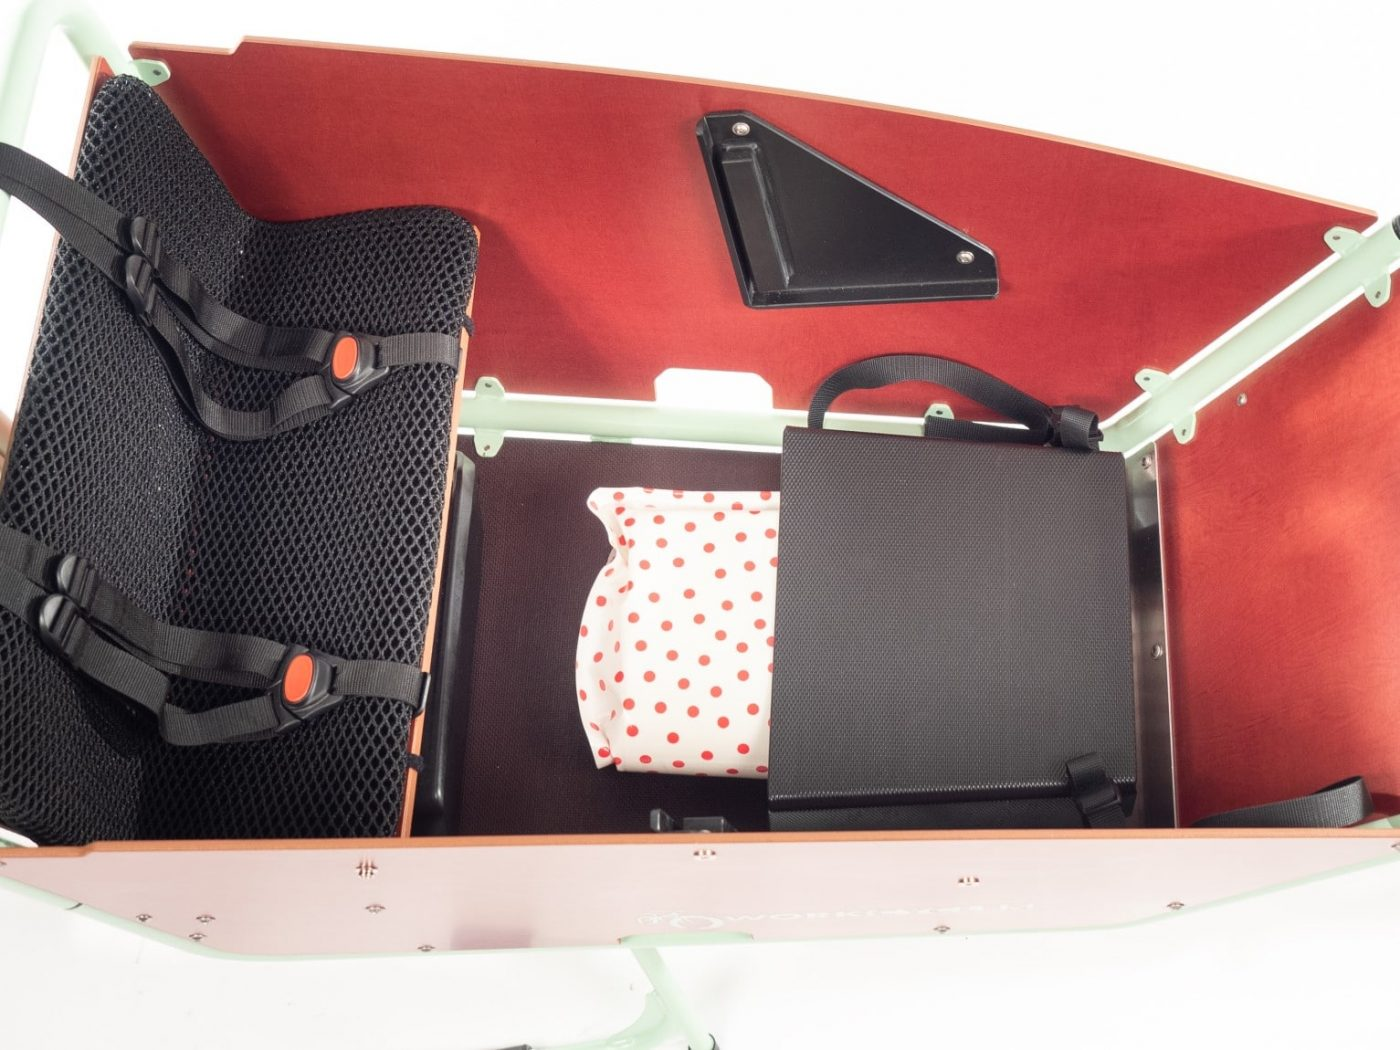 WorkCycles Kr8 bakfiets, child transport bike, Kr8L Maxi Cosi Holder, Large cargo box with kiddy bench